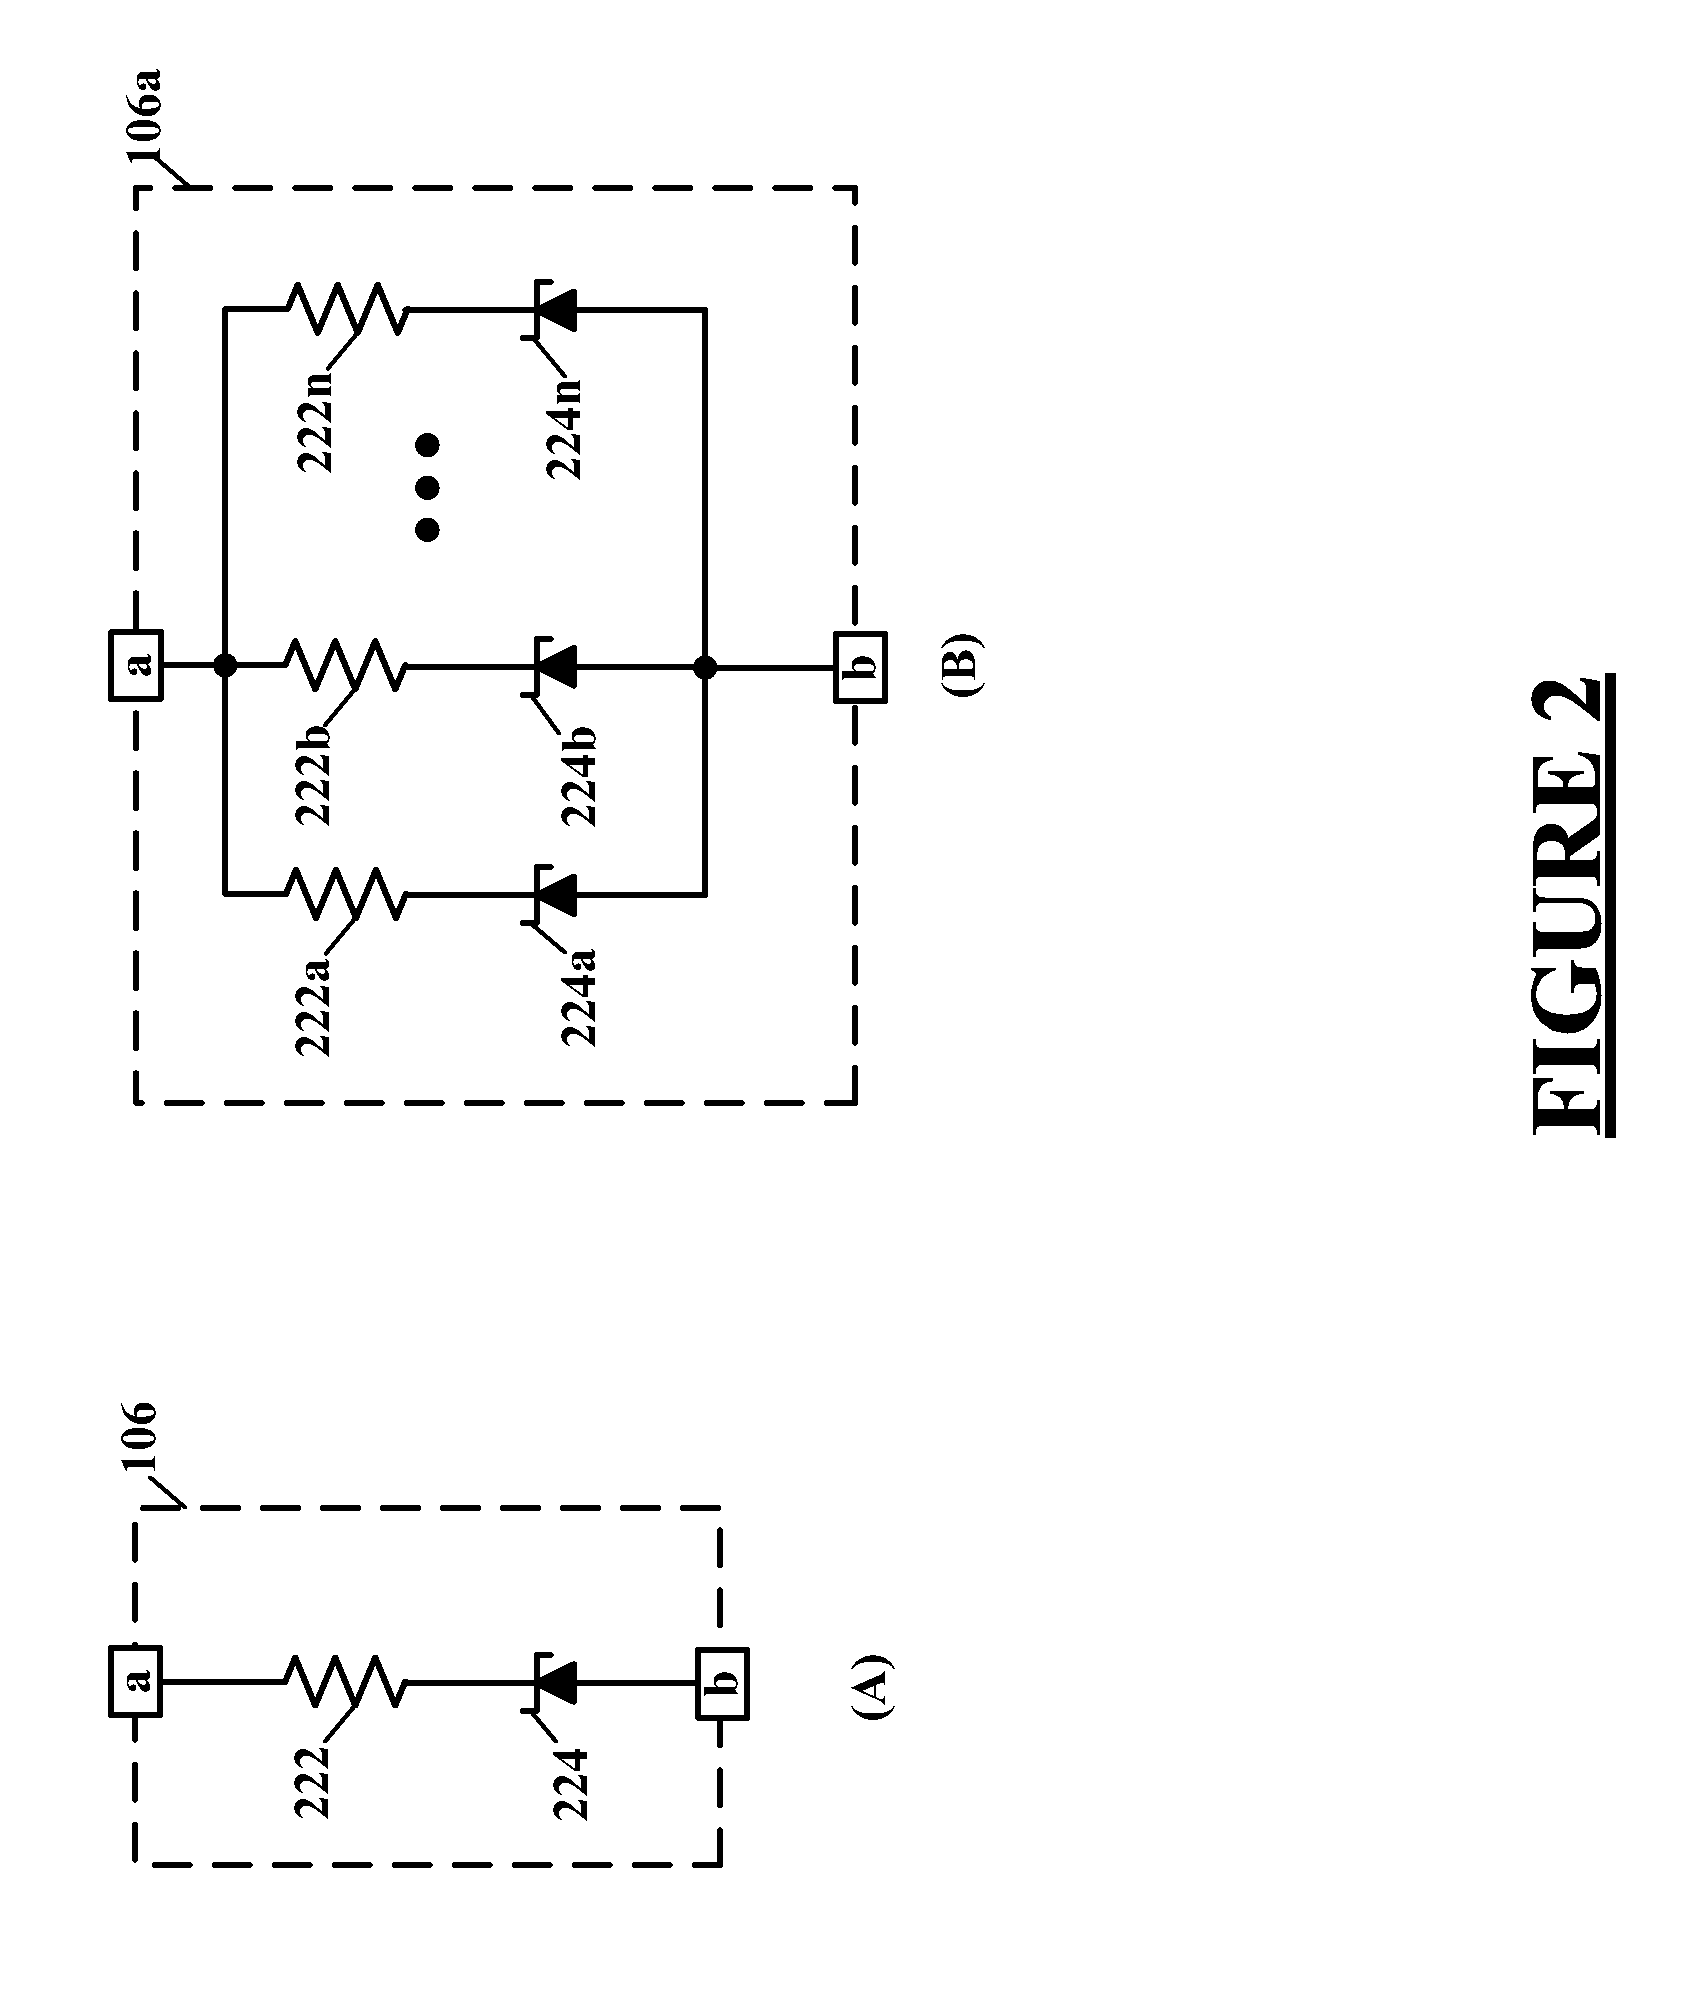 Harmonic Distortion Patent Us8471488 Reducing Total Harmonic Distortion In A Power